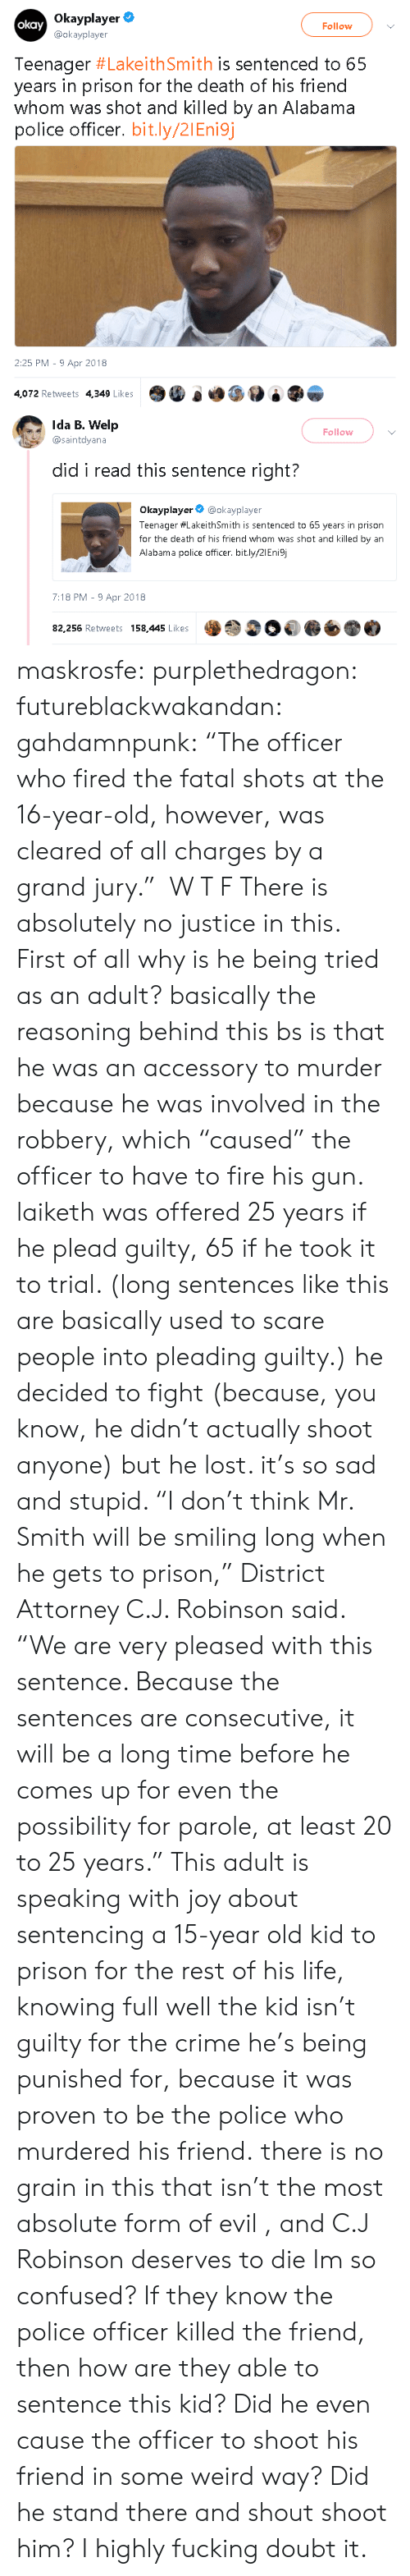 """plead: Okayplayer  @okayplayer  okay  Follow  Teenager #LakeithSmith is sentenced to 65  years in prison for the death of his friend  whom was shot and killed by an Alabama  police officer. bit.ly/21Eni9j  2:25 PM 9 Apr 2018  4,072 Retweets 4,349 LikesO0 e   Ida B. Welp  @saintdyana  Follow  did i read this sentence right?  Okayplayer@okayplayer  Teenager #LakeithSmith is sentenced to 65 years in prison  for the death of his friend whom was shot and killed by an  Alabama police officer. bit.ly/2IEnisj  7:18 PM -9 Apr 2018  82,256 Retweets 158,445 Likes maskrosfe: purplethedragon:  futureblackwakandan:  gahdamnpunk:   """"The officer who fired the fatal shots at the 16-year-old, however, was cleared of all charges by a grand jury."""" W T F   There is absolutely no justice in this. First of all why is he being tried as an adult?   basically the reasoning behind this bs is that he was an accessory to murder because he was involved in the robbery, which """"caused"""" the officer to have to fire his gun. laiketh was offered 25 years if he plead guilty, 65 if he took it to trial. (long sentences like this are basically used to scare people into pleading guilty.) he decided to fight (because, you know, he didn't actually shoot anyone) but he lost. it's so sad and stupid.     """"I don't think Mr. Smith will be smiling long when he gets to prison,"""" District Attorney C.J. Robinson said. """"We are very pleased with this sentence. Because the sentences are consecutive, it will be a long time before he comes up for even the possibility for parole, at least 20 to 25 years.""""  This adult is speaking with joy about sentencing a 15-year old kid to prison for the rest of his life, knowing full well the kid isn't guilty for the crime he's being punished for, because it was proven to be the police who murdered his friend.  there is no grain in this that isn't the most absolute form of evil , and C.J Robinson deserves to die Im so confused? If they know the police officer killed the friend, then how a"""